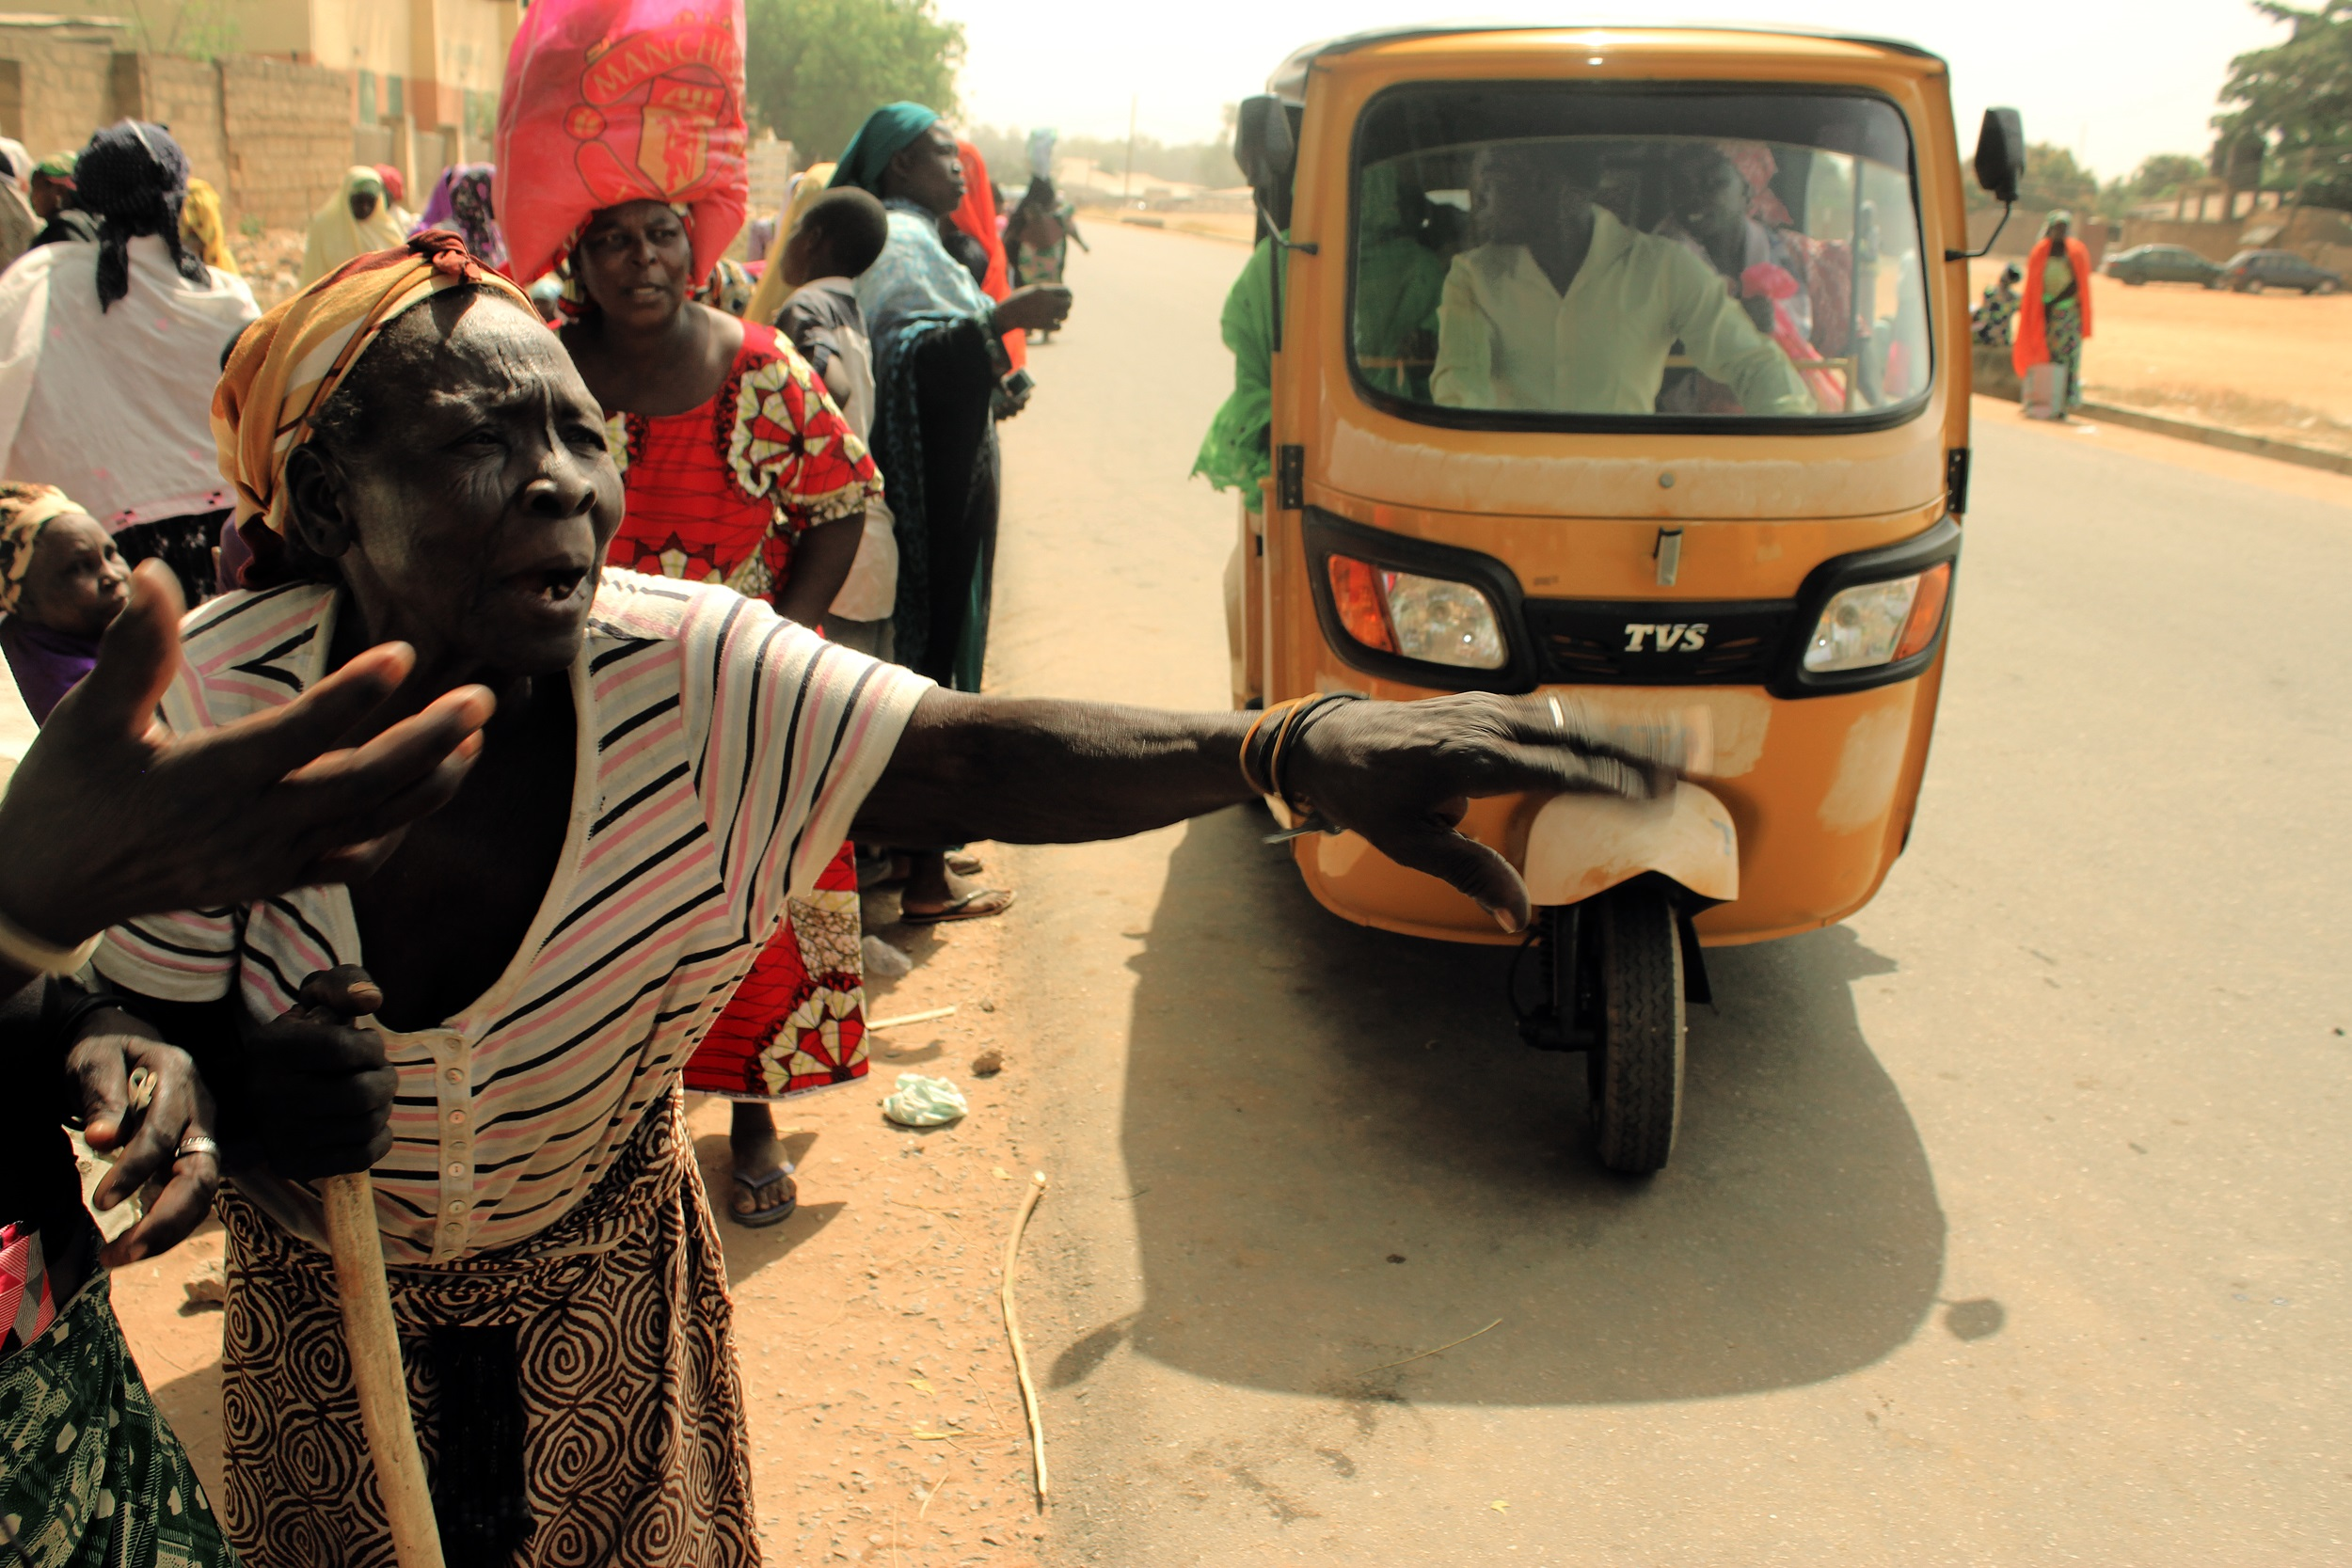 Nigerian IDPs collecting supplies